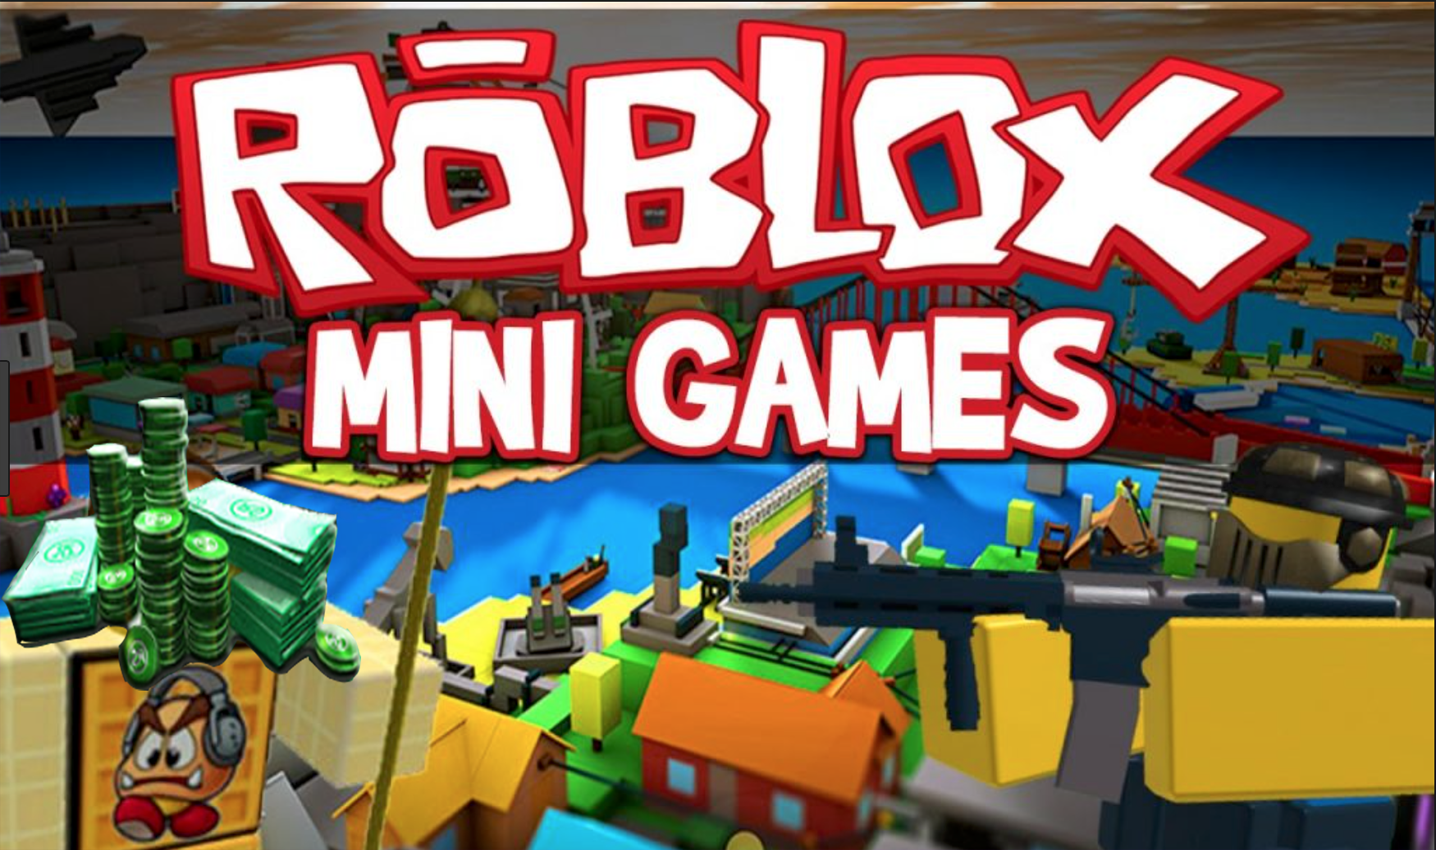 Download How To Get Free Robux For Roblox 2018 1 0 Apk Android Books Reference Apps